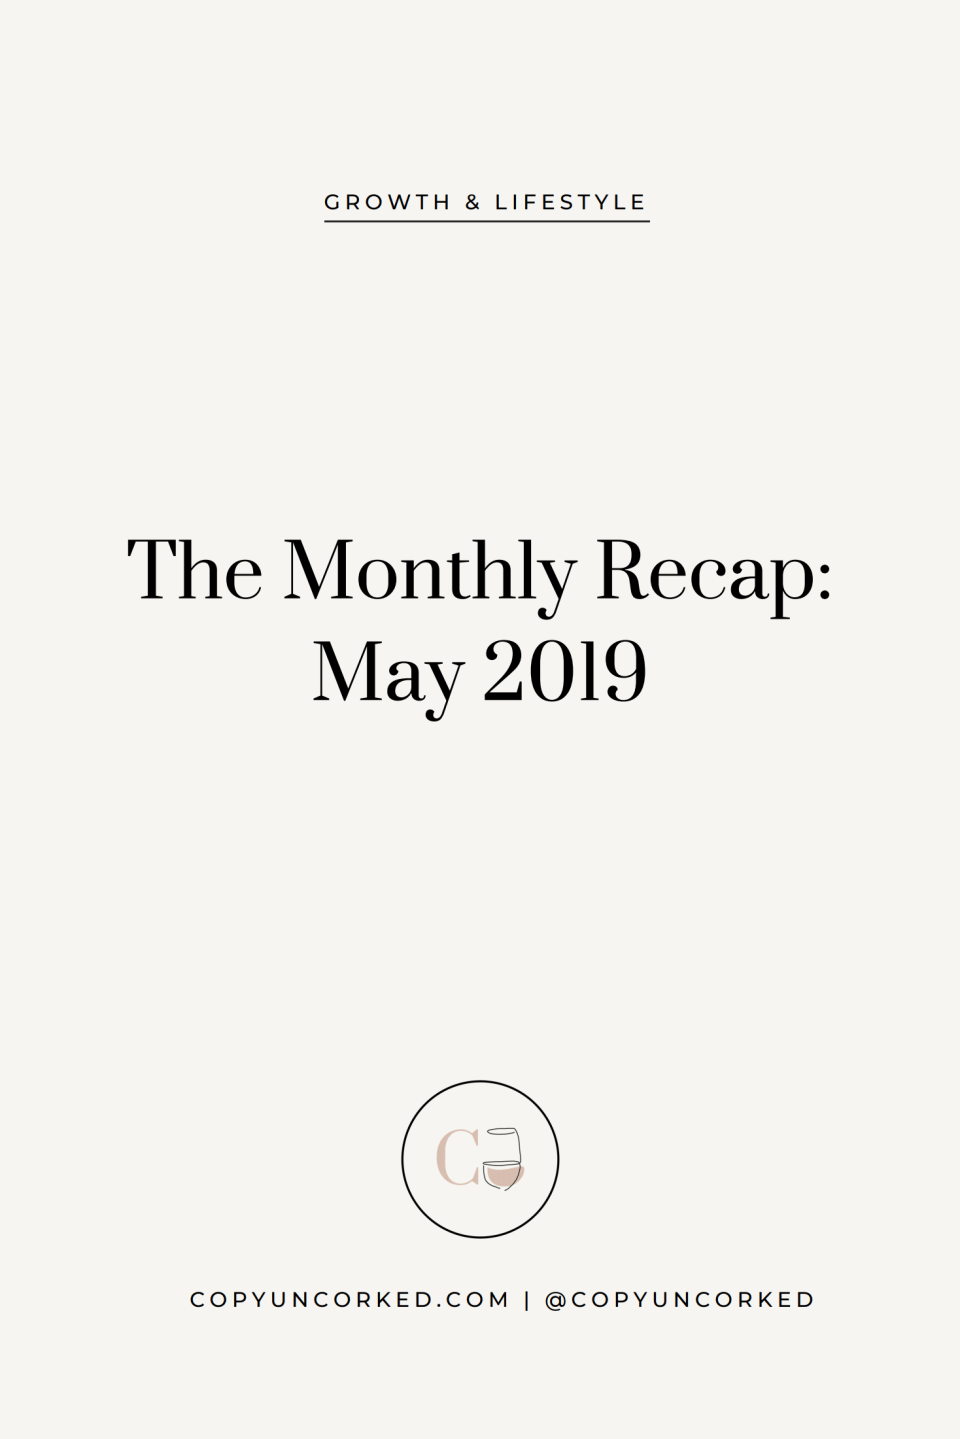 The Monthly Recap: May 2019 - copyuncorked.com